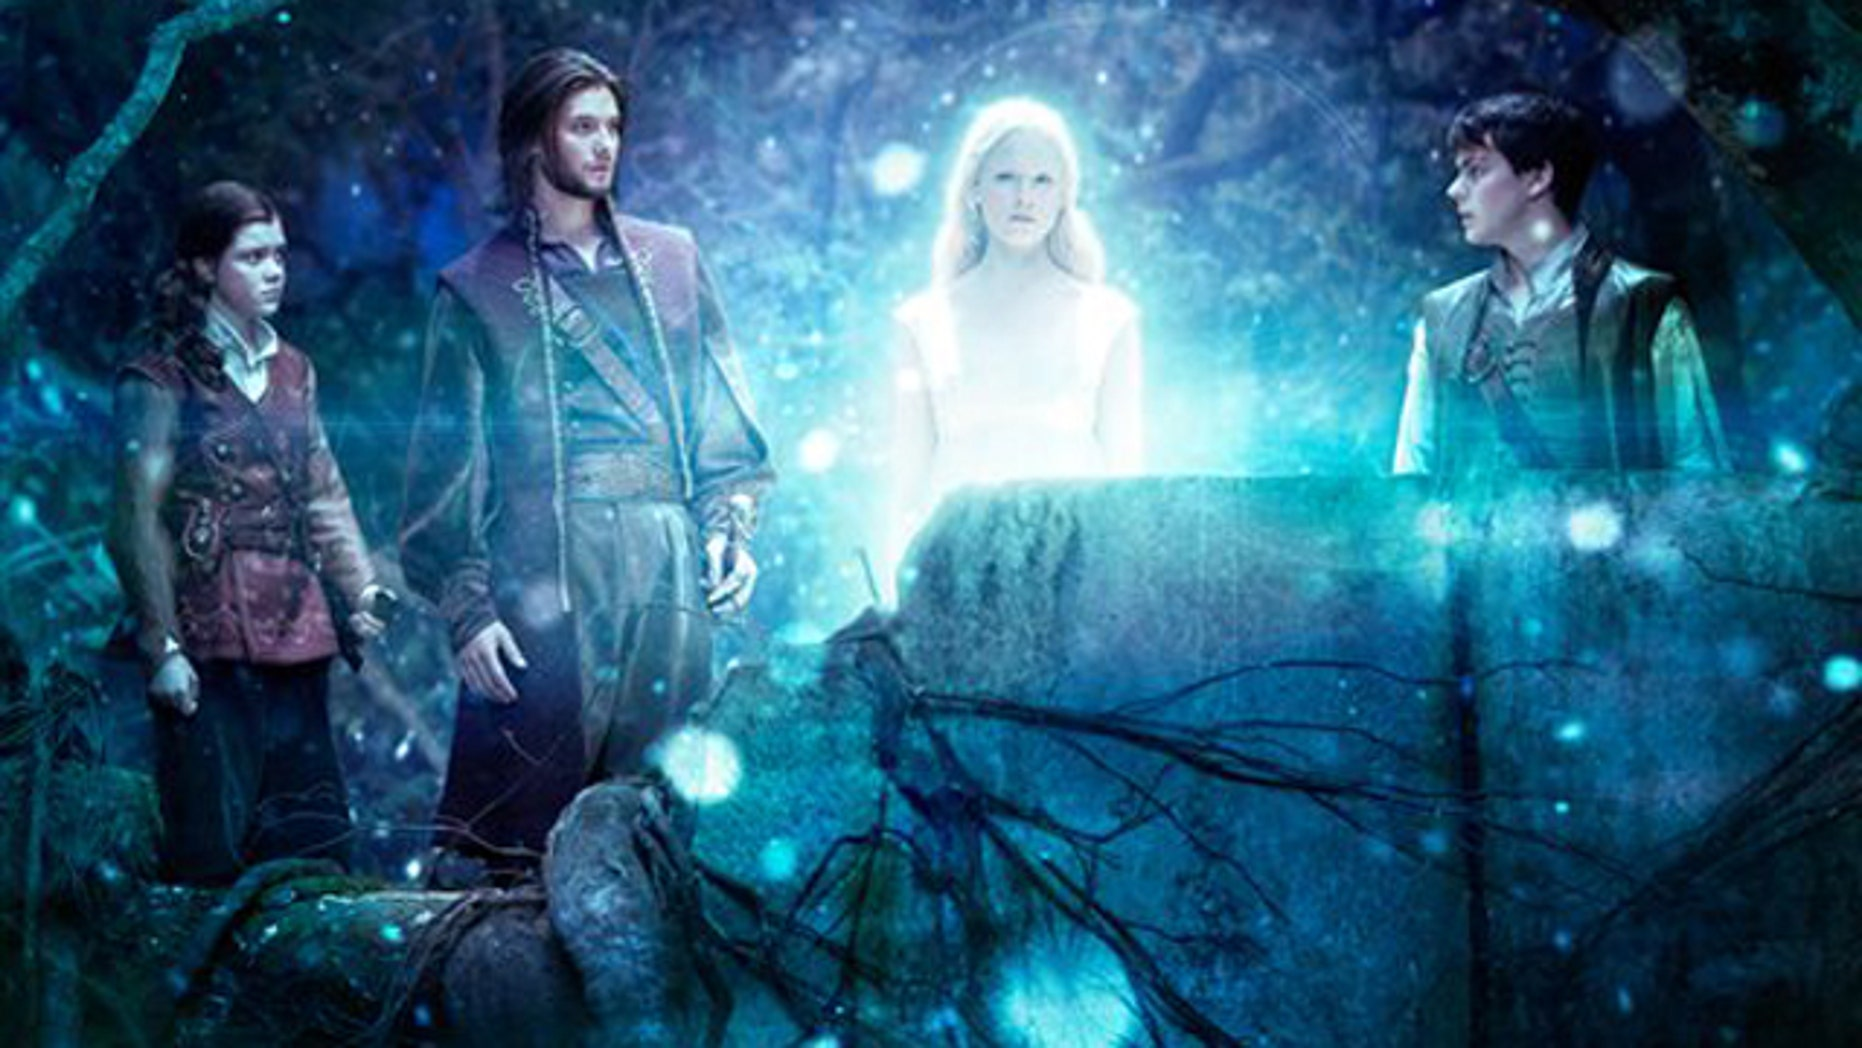 In this film publicity image released by 20th Century Fox, from left, Georgie Henley, Ben Barnes, Laura Brent, and Skandar Keynes are shown in a scene from The Chronicles of Narnia: The Voyage of the Dawn Treader.